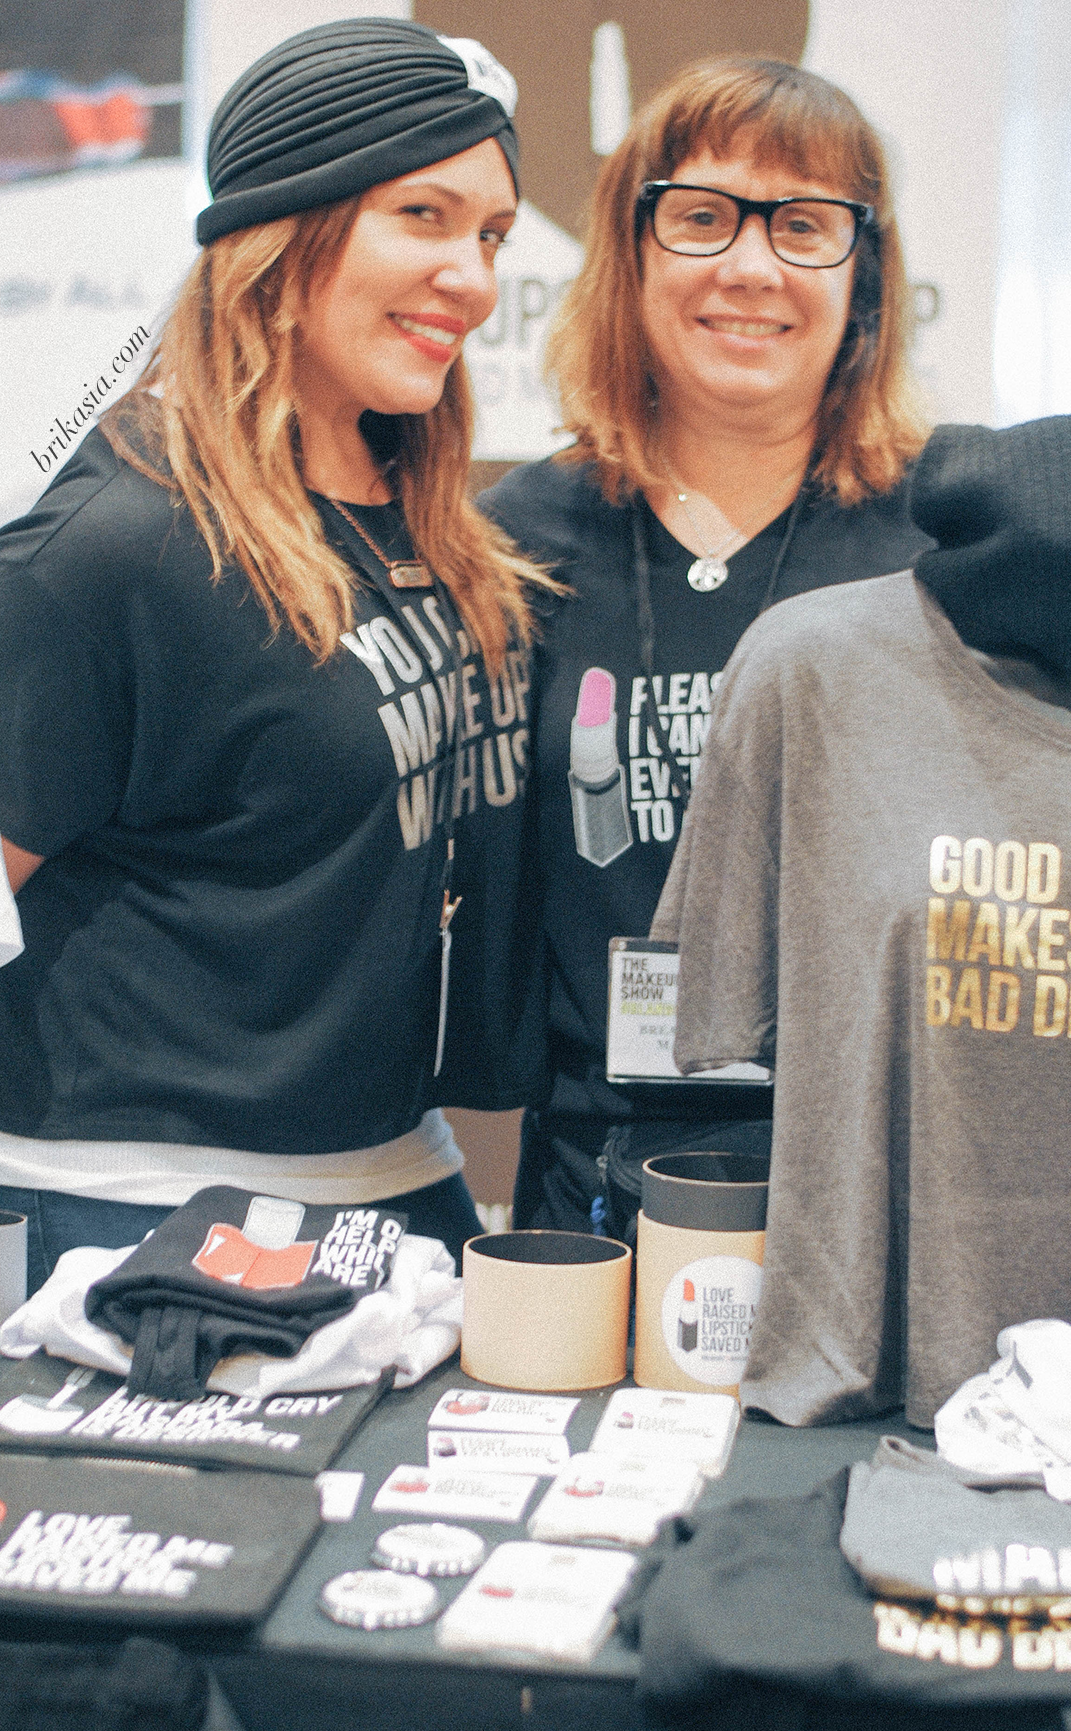 Breakups to Makeup Brand Spotlight, makeup bags and accessories, clever shirts, clothes and accessories for makeup lovers, The Makeup Show Orlando